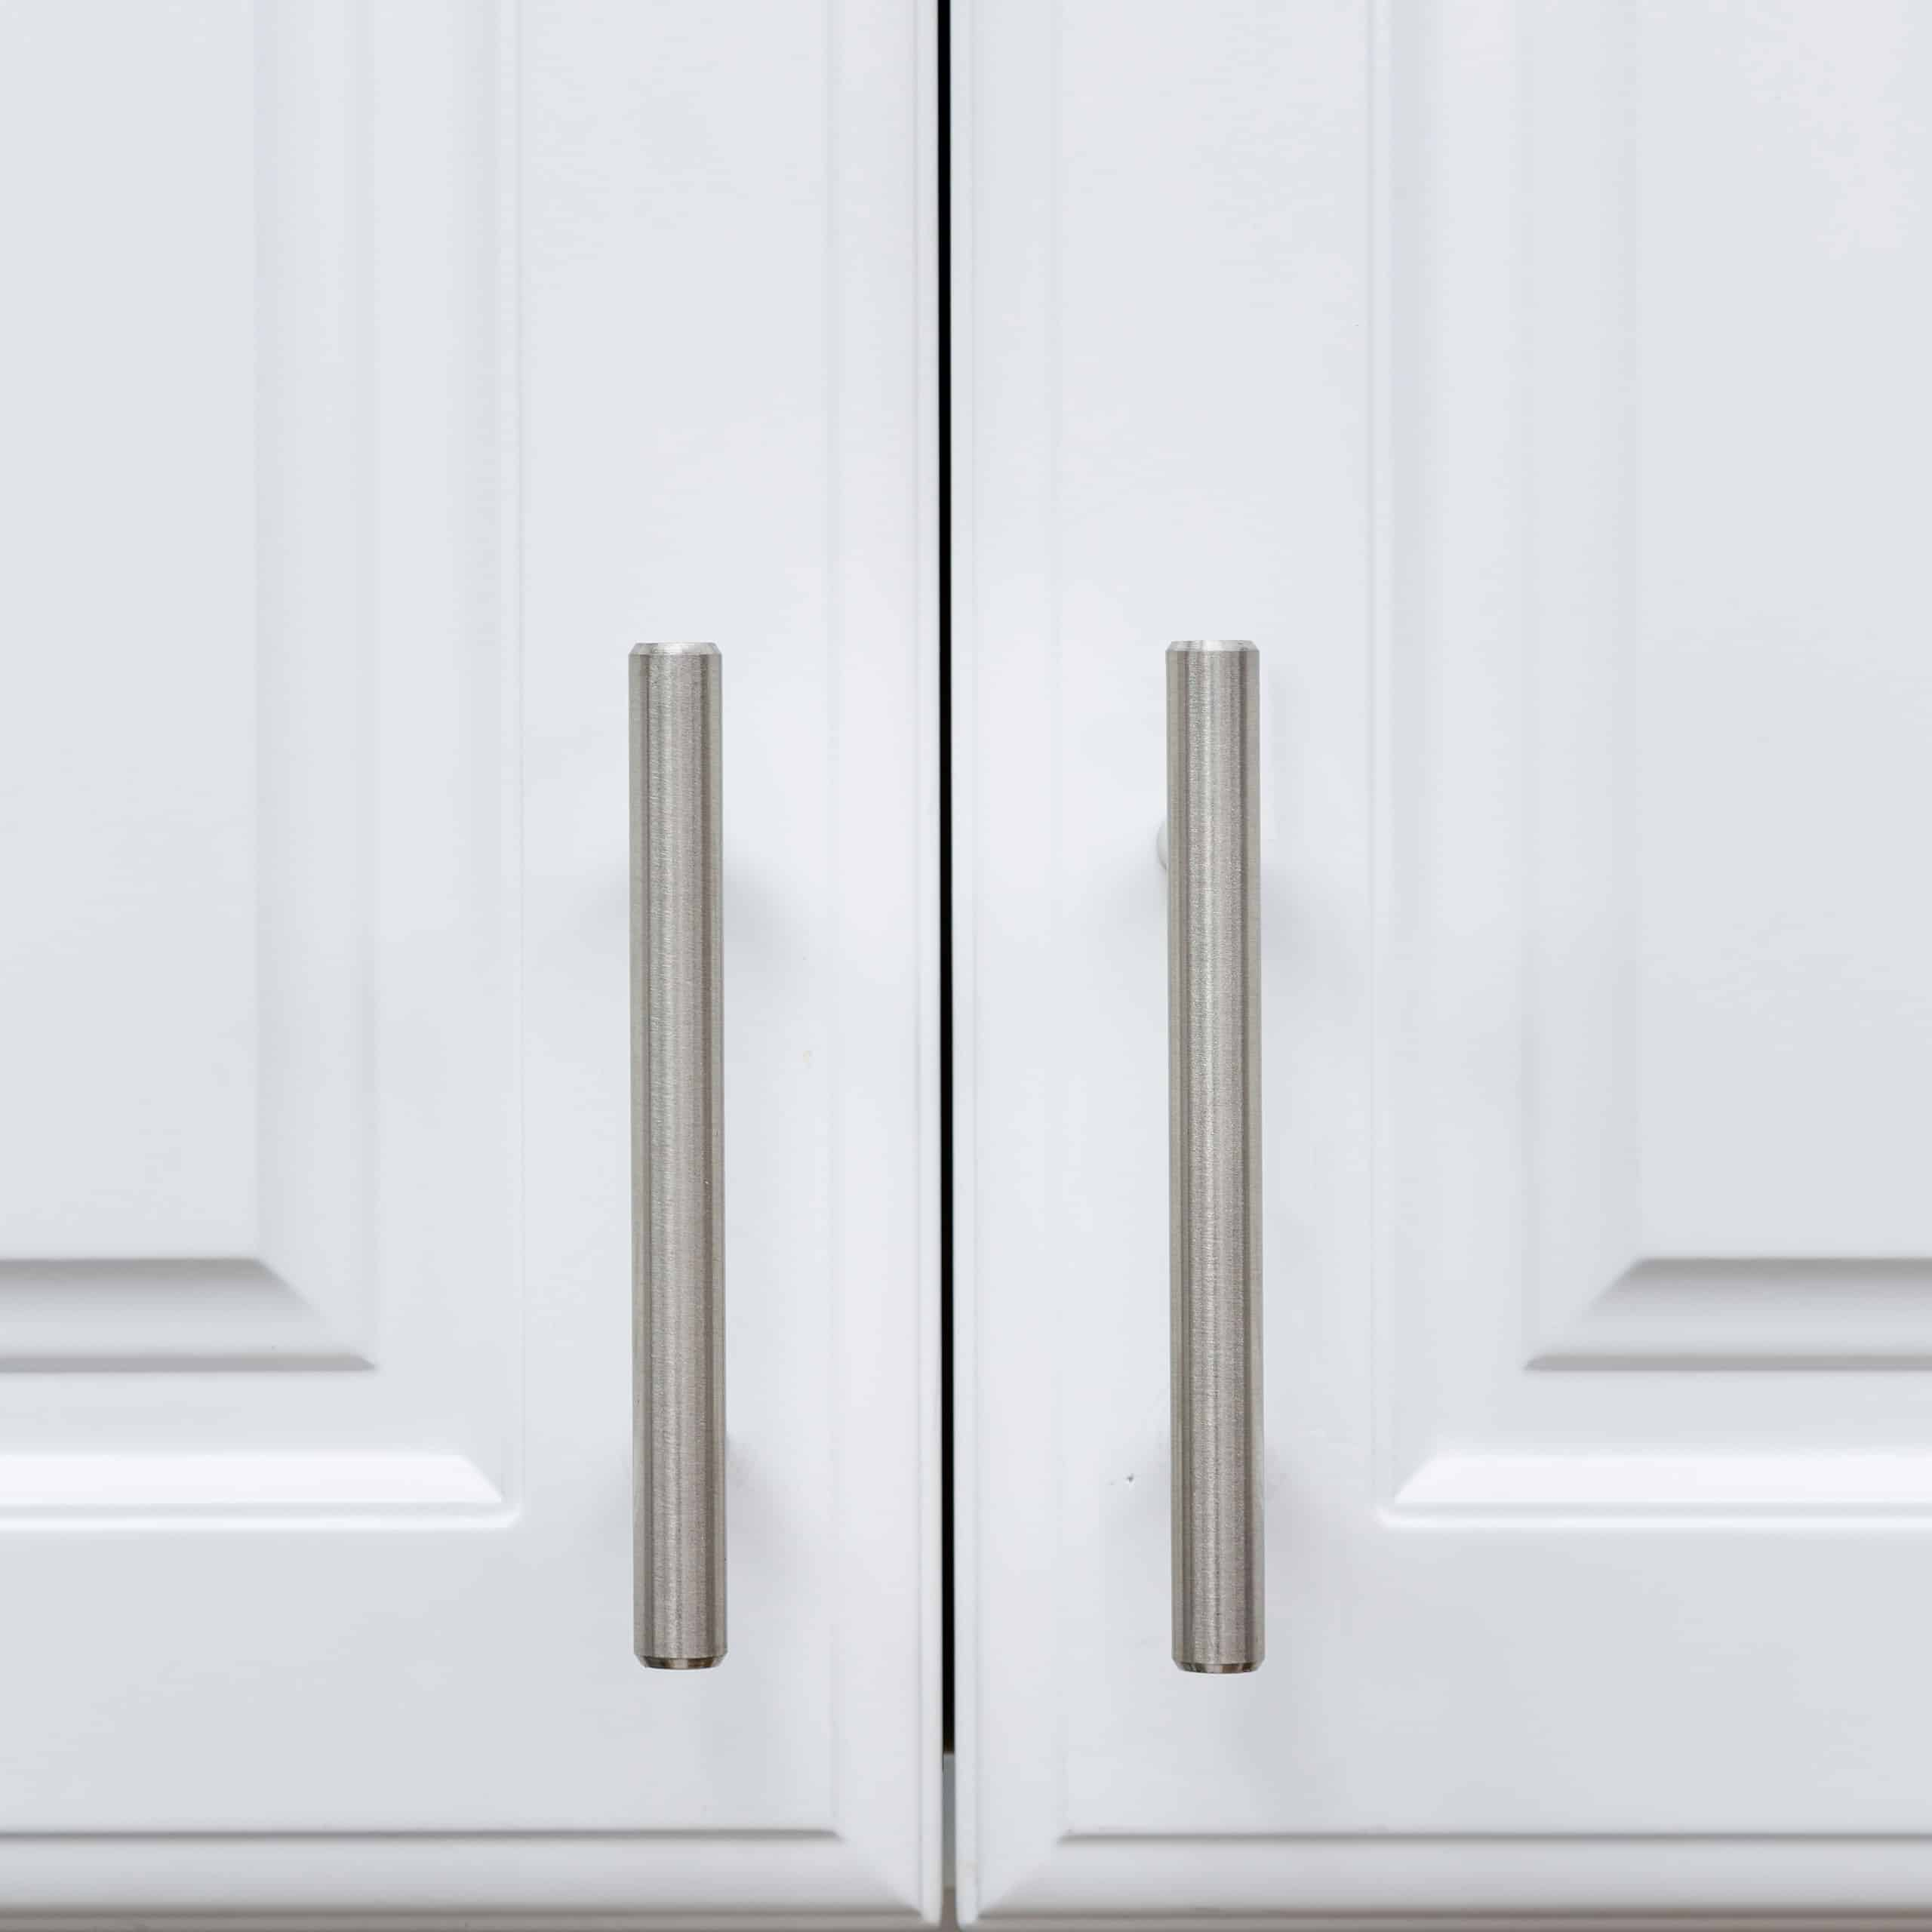 Cabinet Door Handle Installation